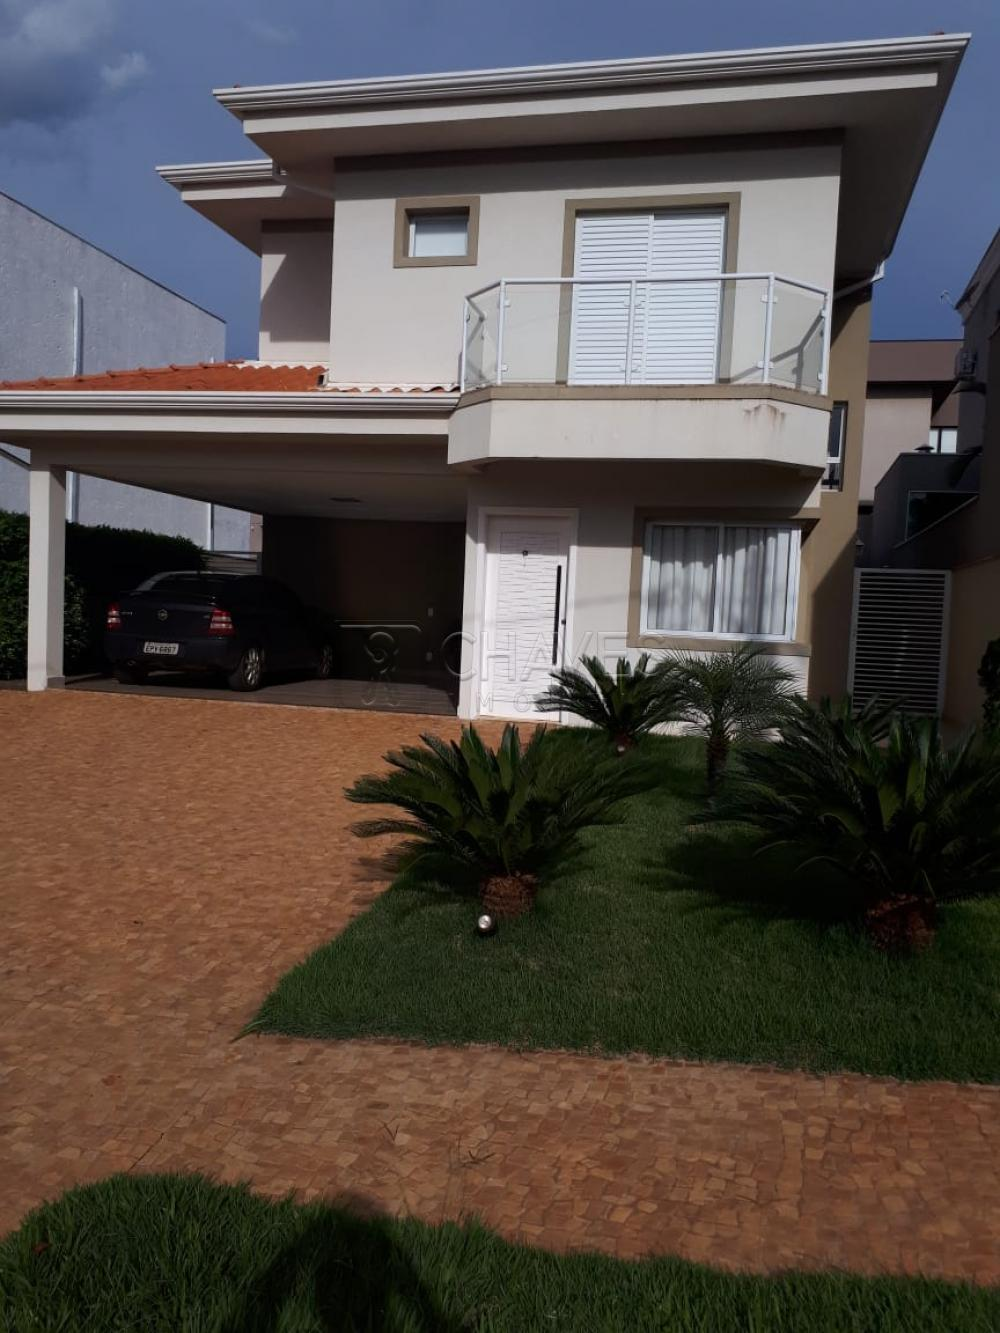 Ribeirao Preto Casa Venda R$870.000,00 Condominio R$700,00 3 Dormitorios 1 Suite Area do terreno 307.00m2 Area construida 200.00m2